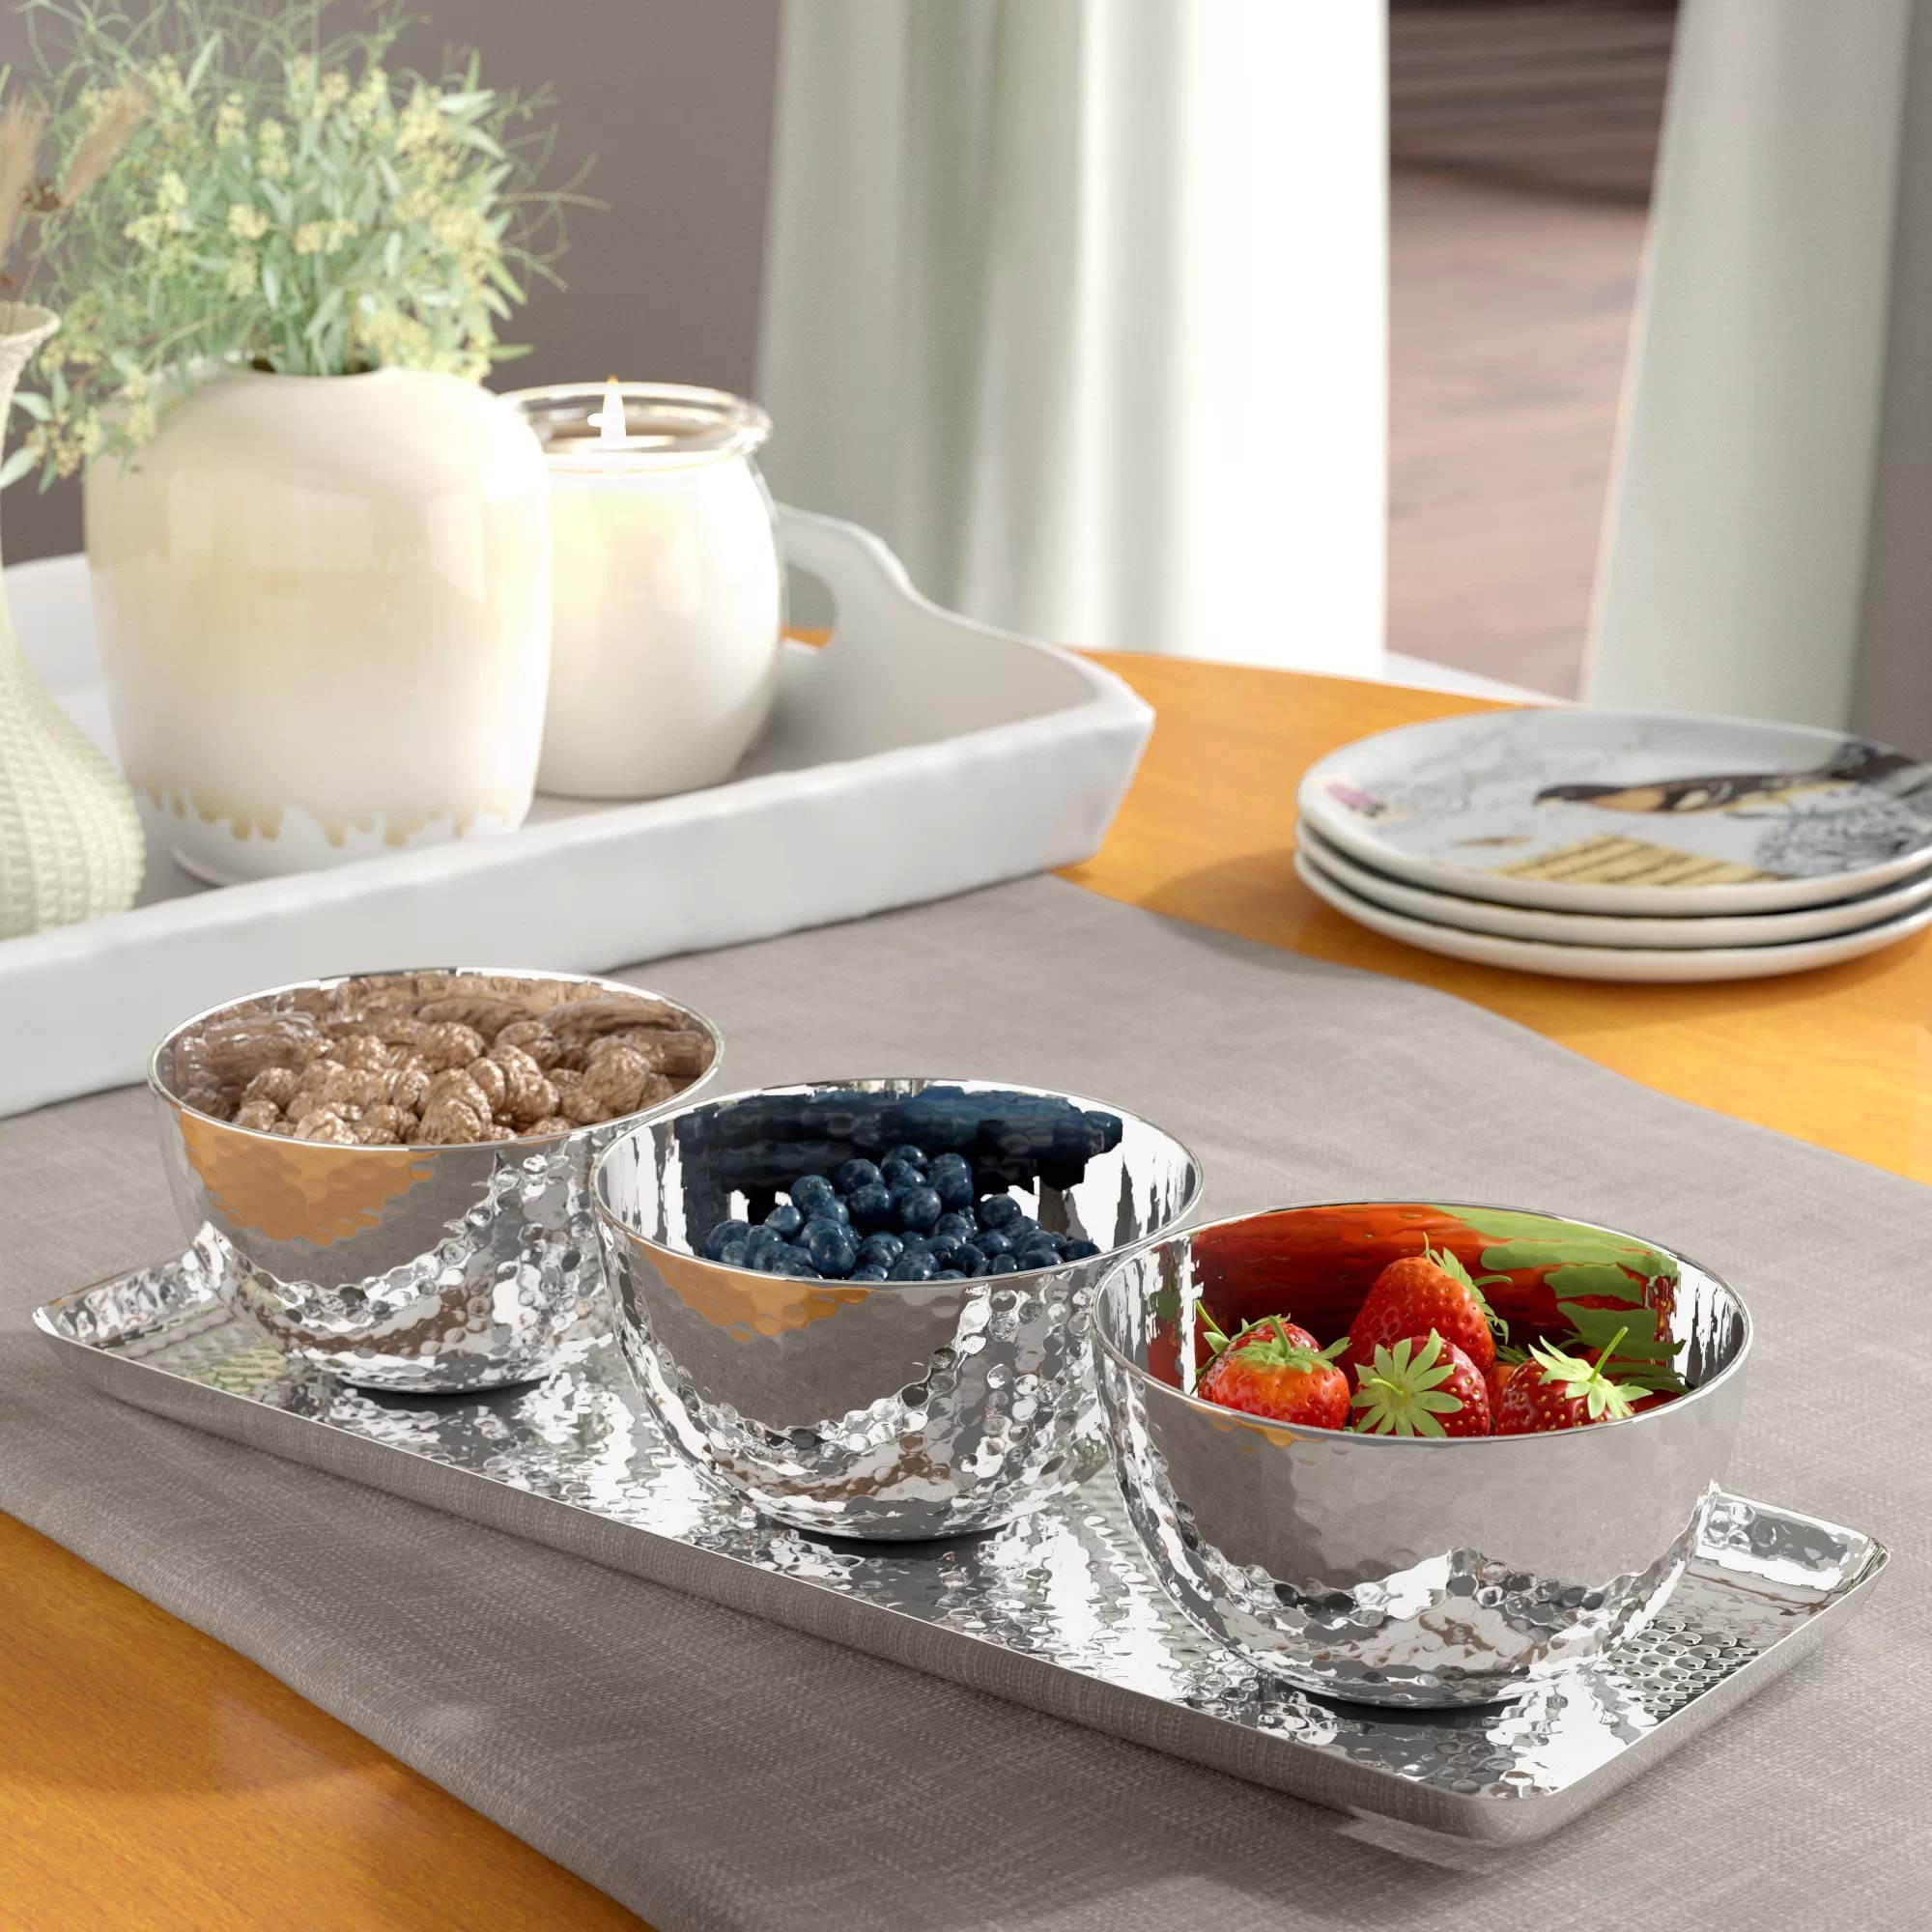 Relish Tray with Serving Bowls 4-piece Set, Hammered Condiment Server for Appetizers, Candy, Nuts and Dips, Elegant Stainless Steel Serveware Set